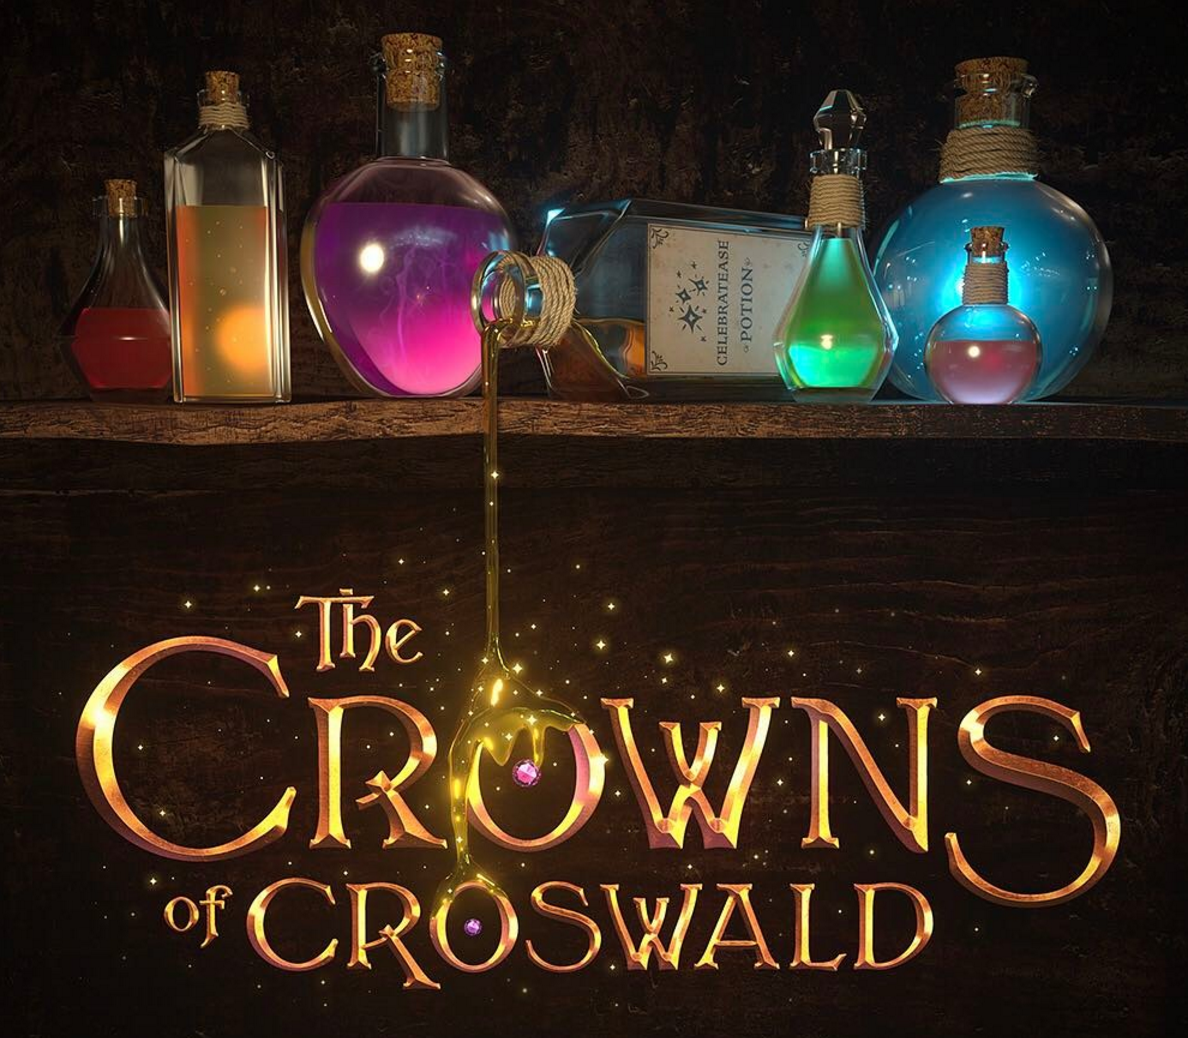 crowns of croswald book